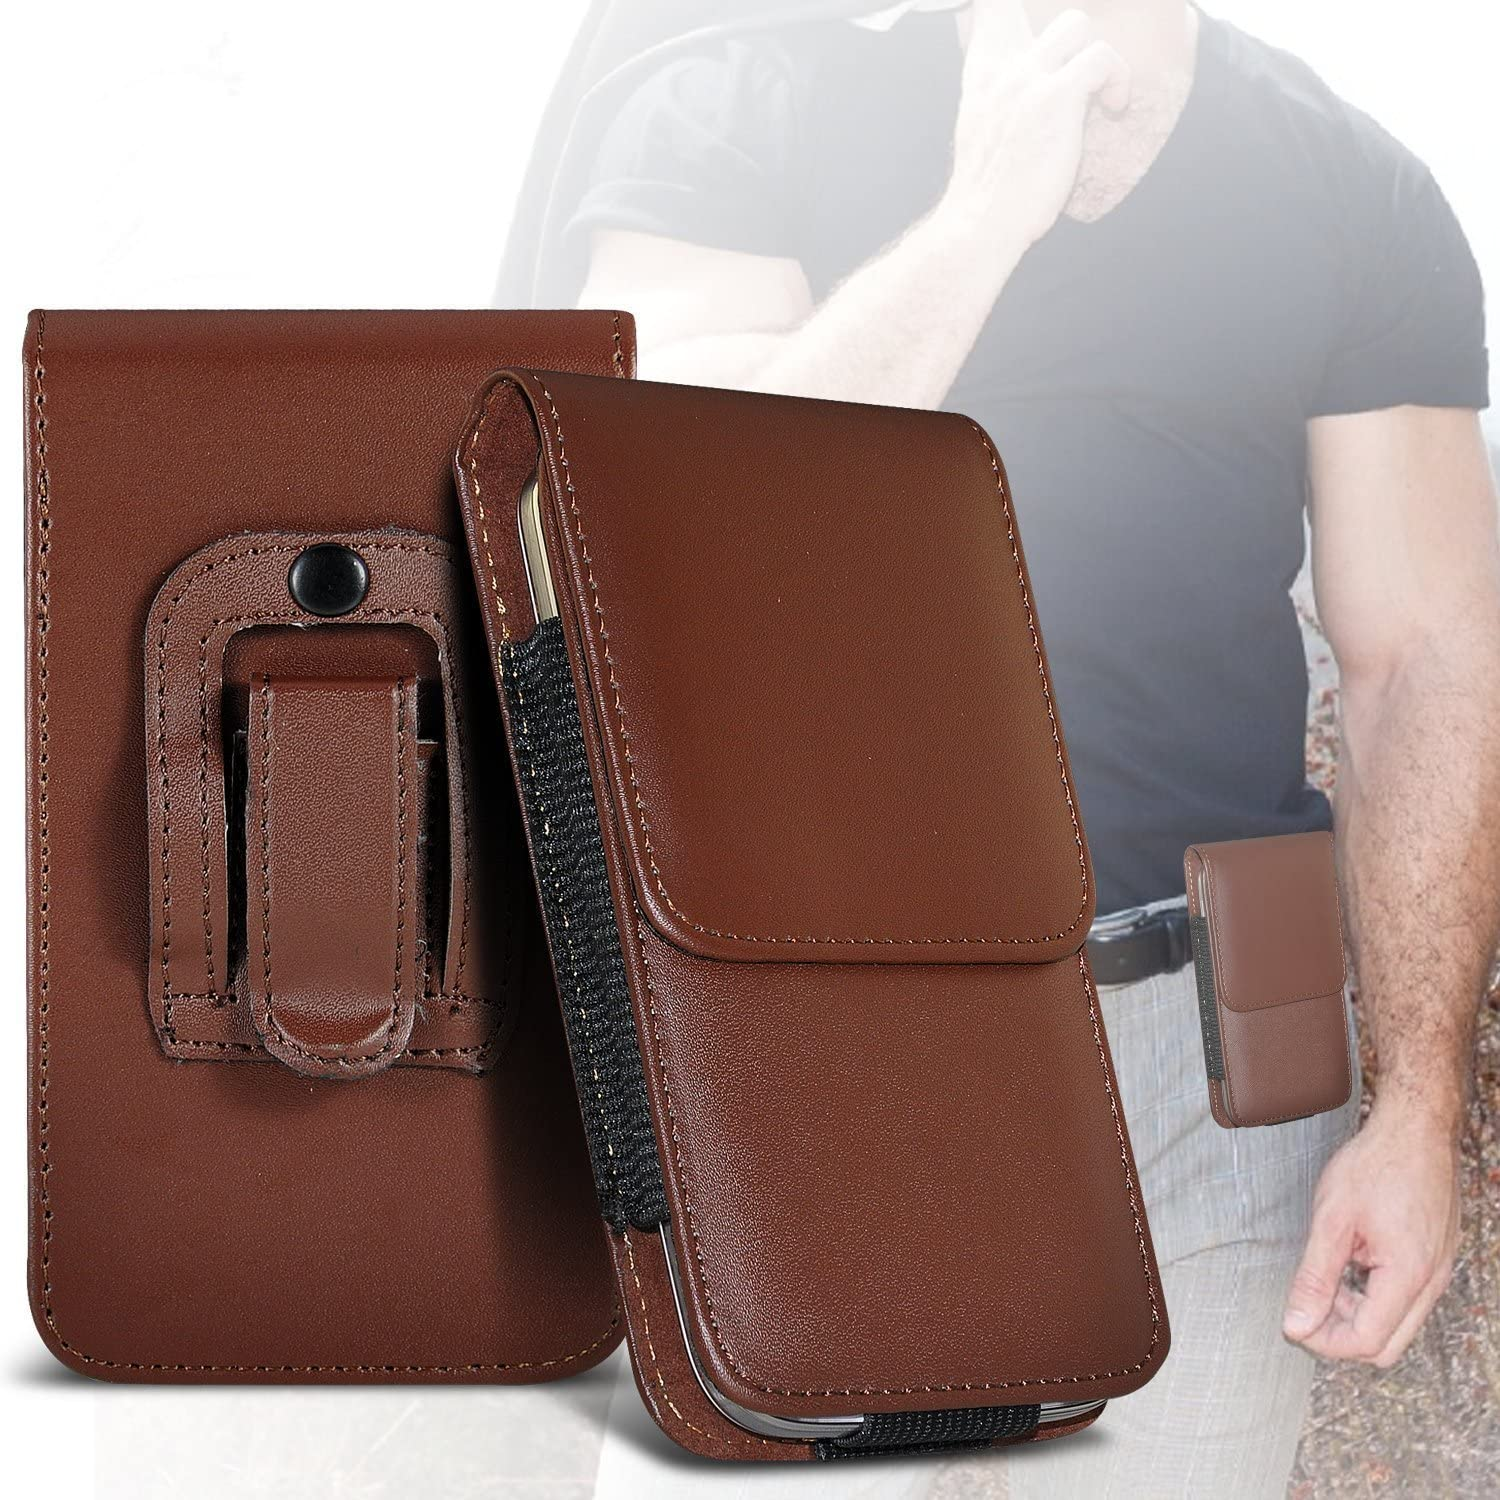 Brown Premium Vertical Faux Leather Belt Holster Pouch Cover Case With Magnetic Closure For Nokia 7 plus I-Sonite